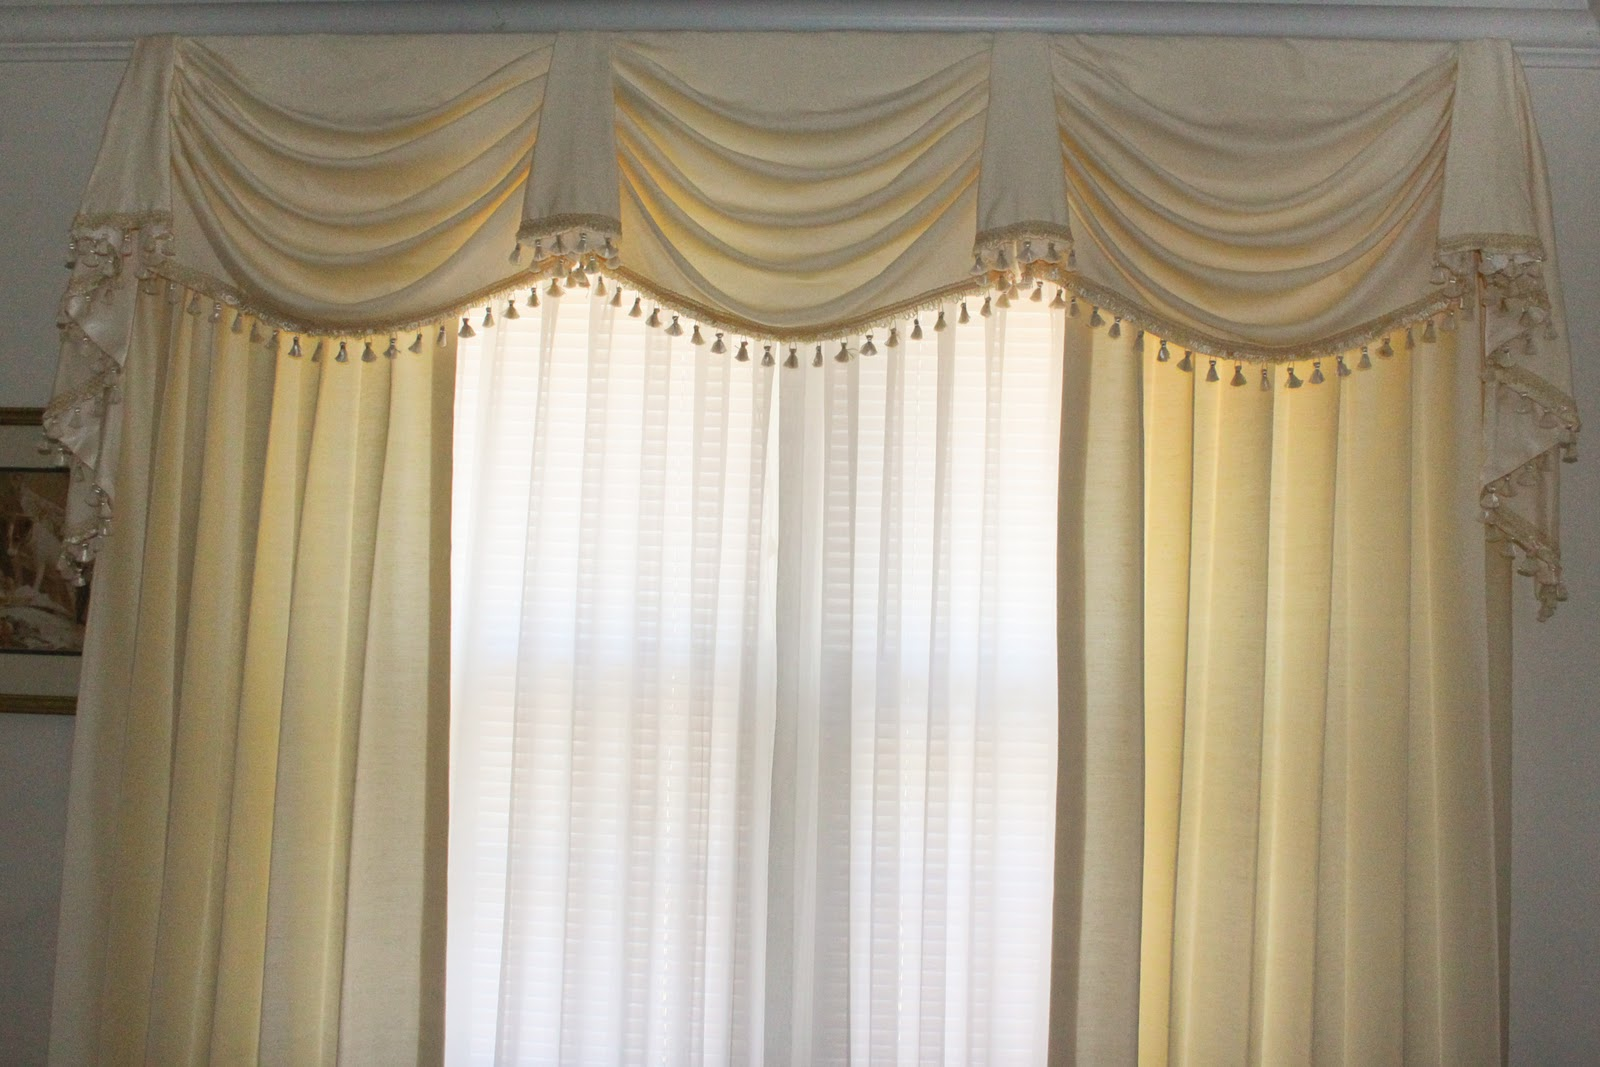 Dawn S D S Amp Decor Kingston Valance Amp Panels